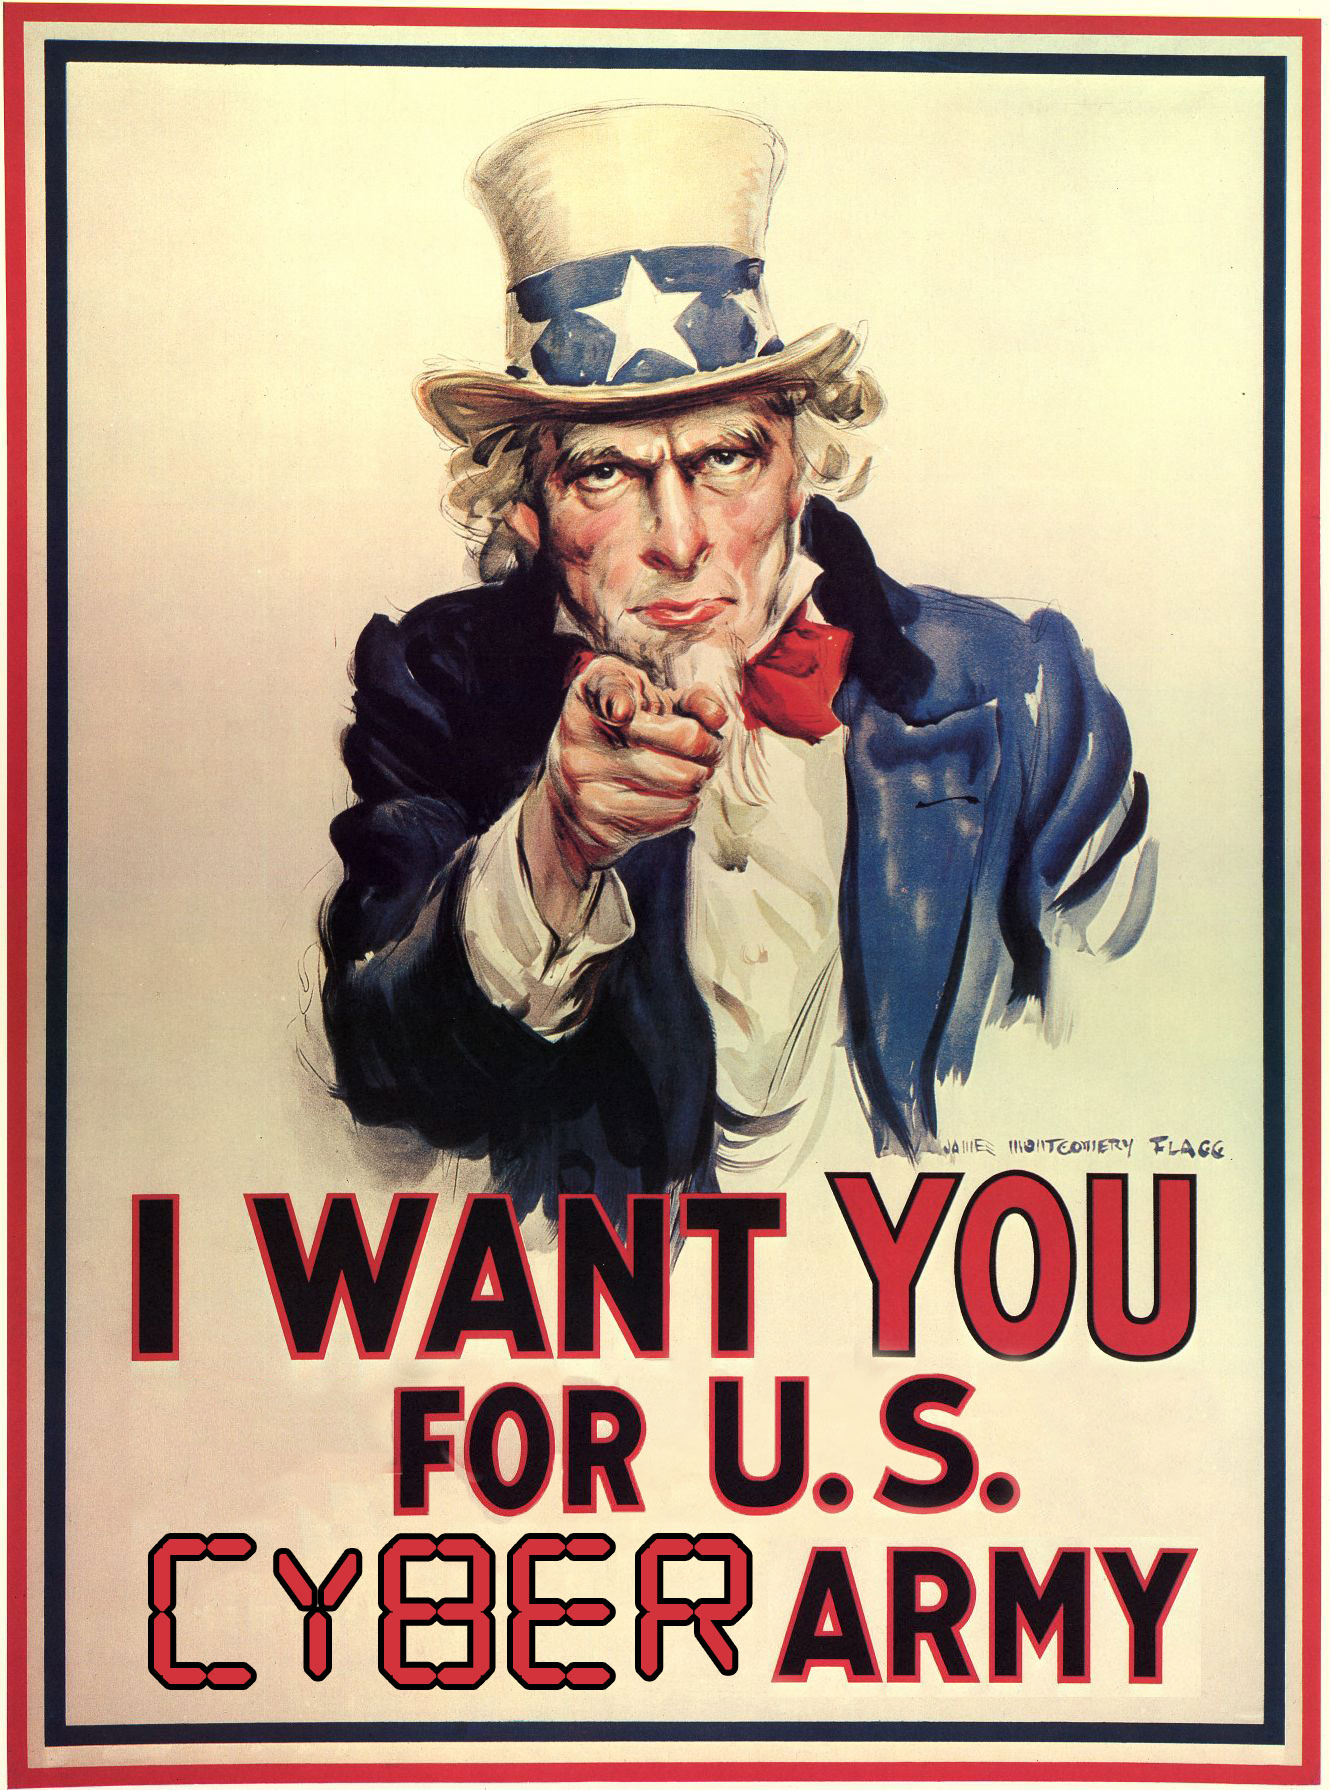 I Want You For U.S. Cyber Army Poster Uncle Sam